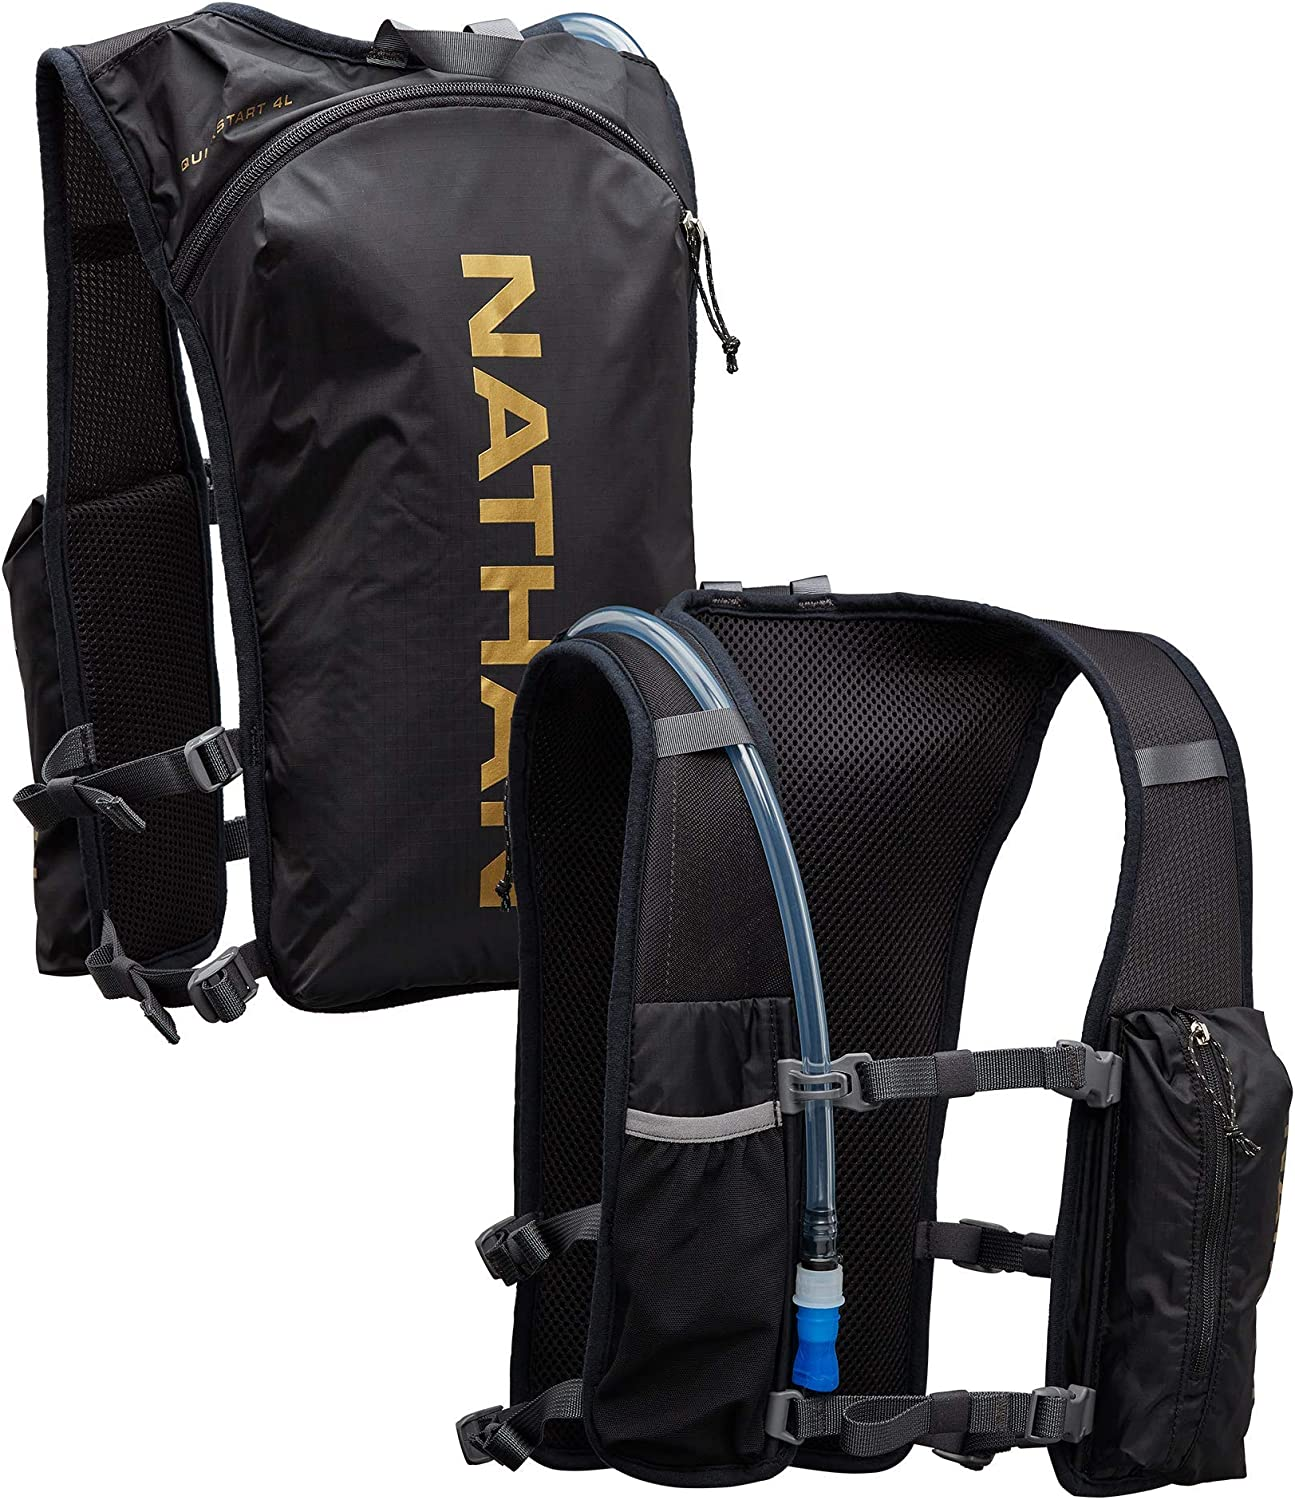 Raleigh Mall Nathan QuickStart Hydration Pack Arlington Mall Running 4L Vest. with Storage 1